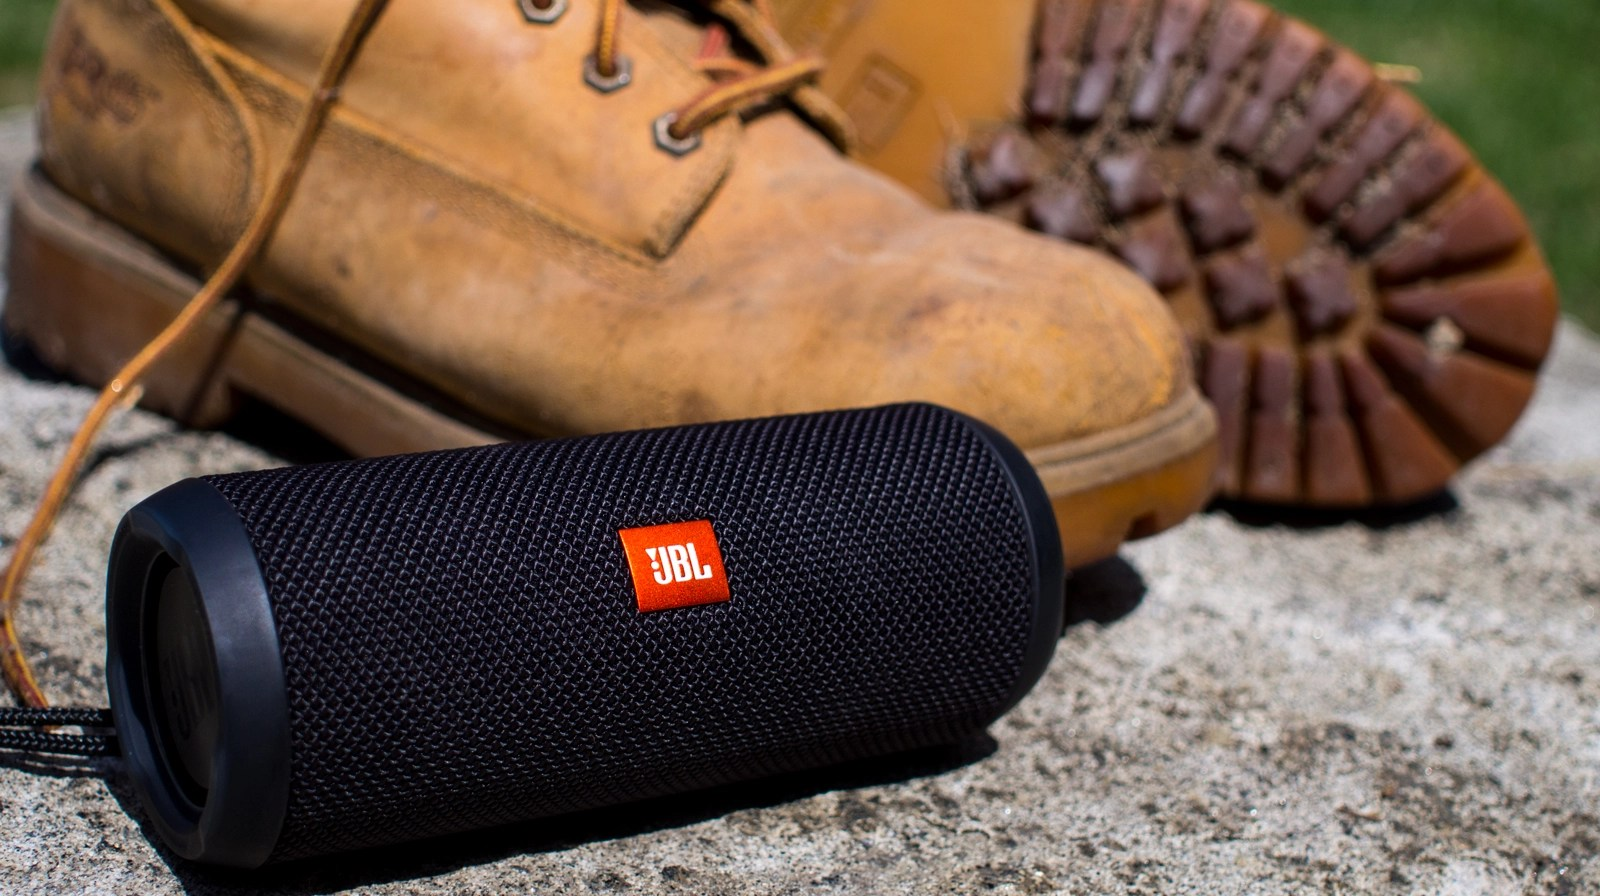 Jbl Charge3 Jbl Flip 3 Vs Jbl Charge 3which Should You Buy Soundguys